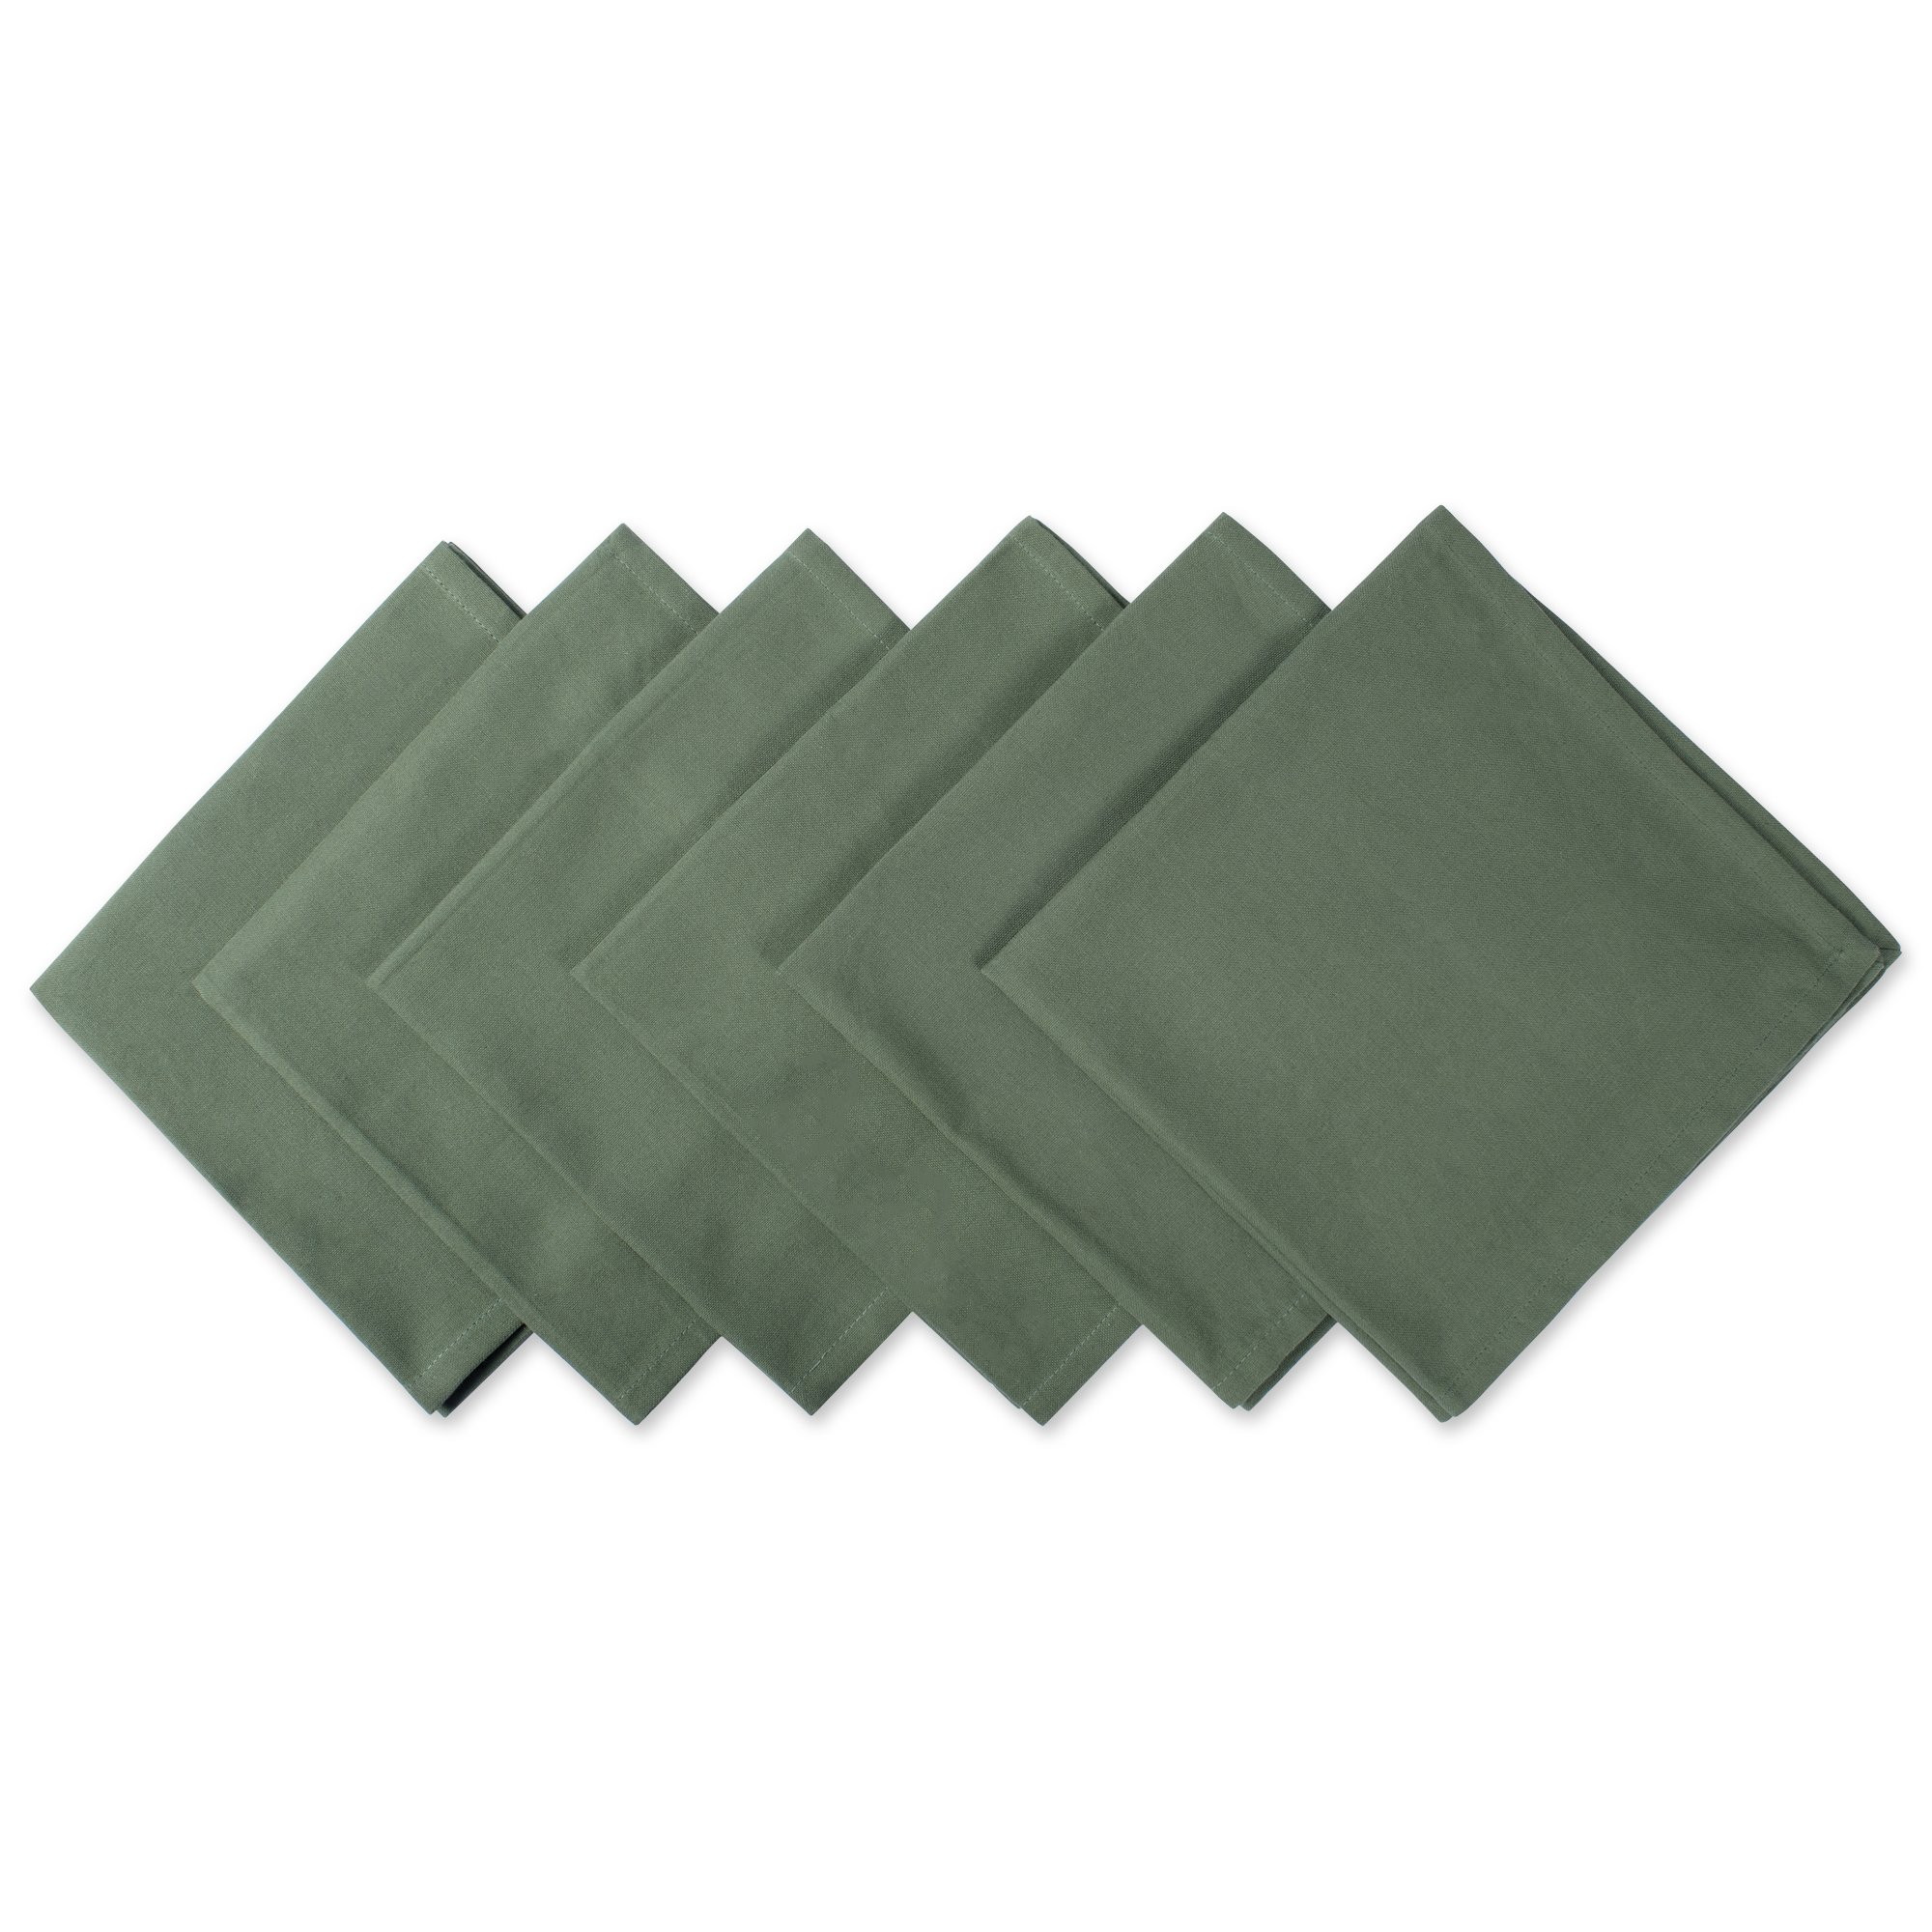 """DII 100% Cotton Cloth Napkins, Oversized 20x20"""" Dinner Napkins, For Basic Everyday Use, Banquets, Weddings, Events, or Family Gatherings - Set of 6, Sage"""